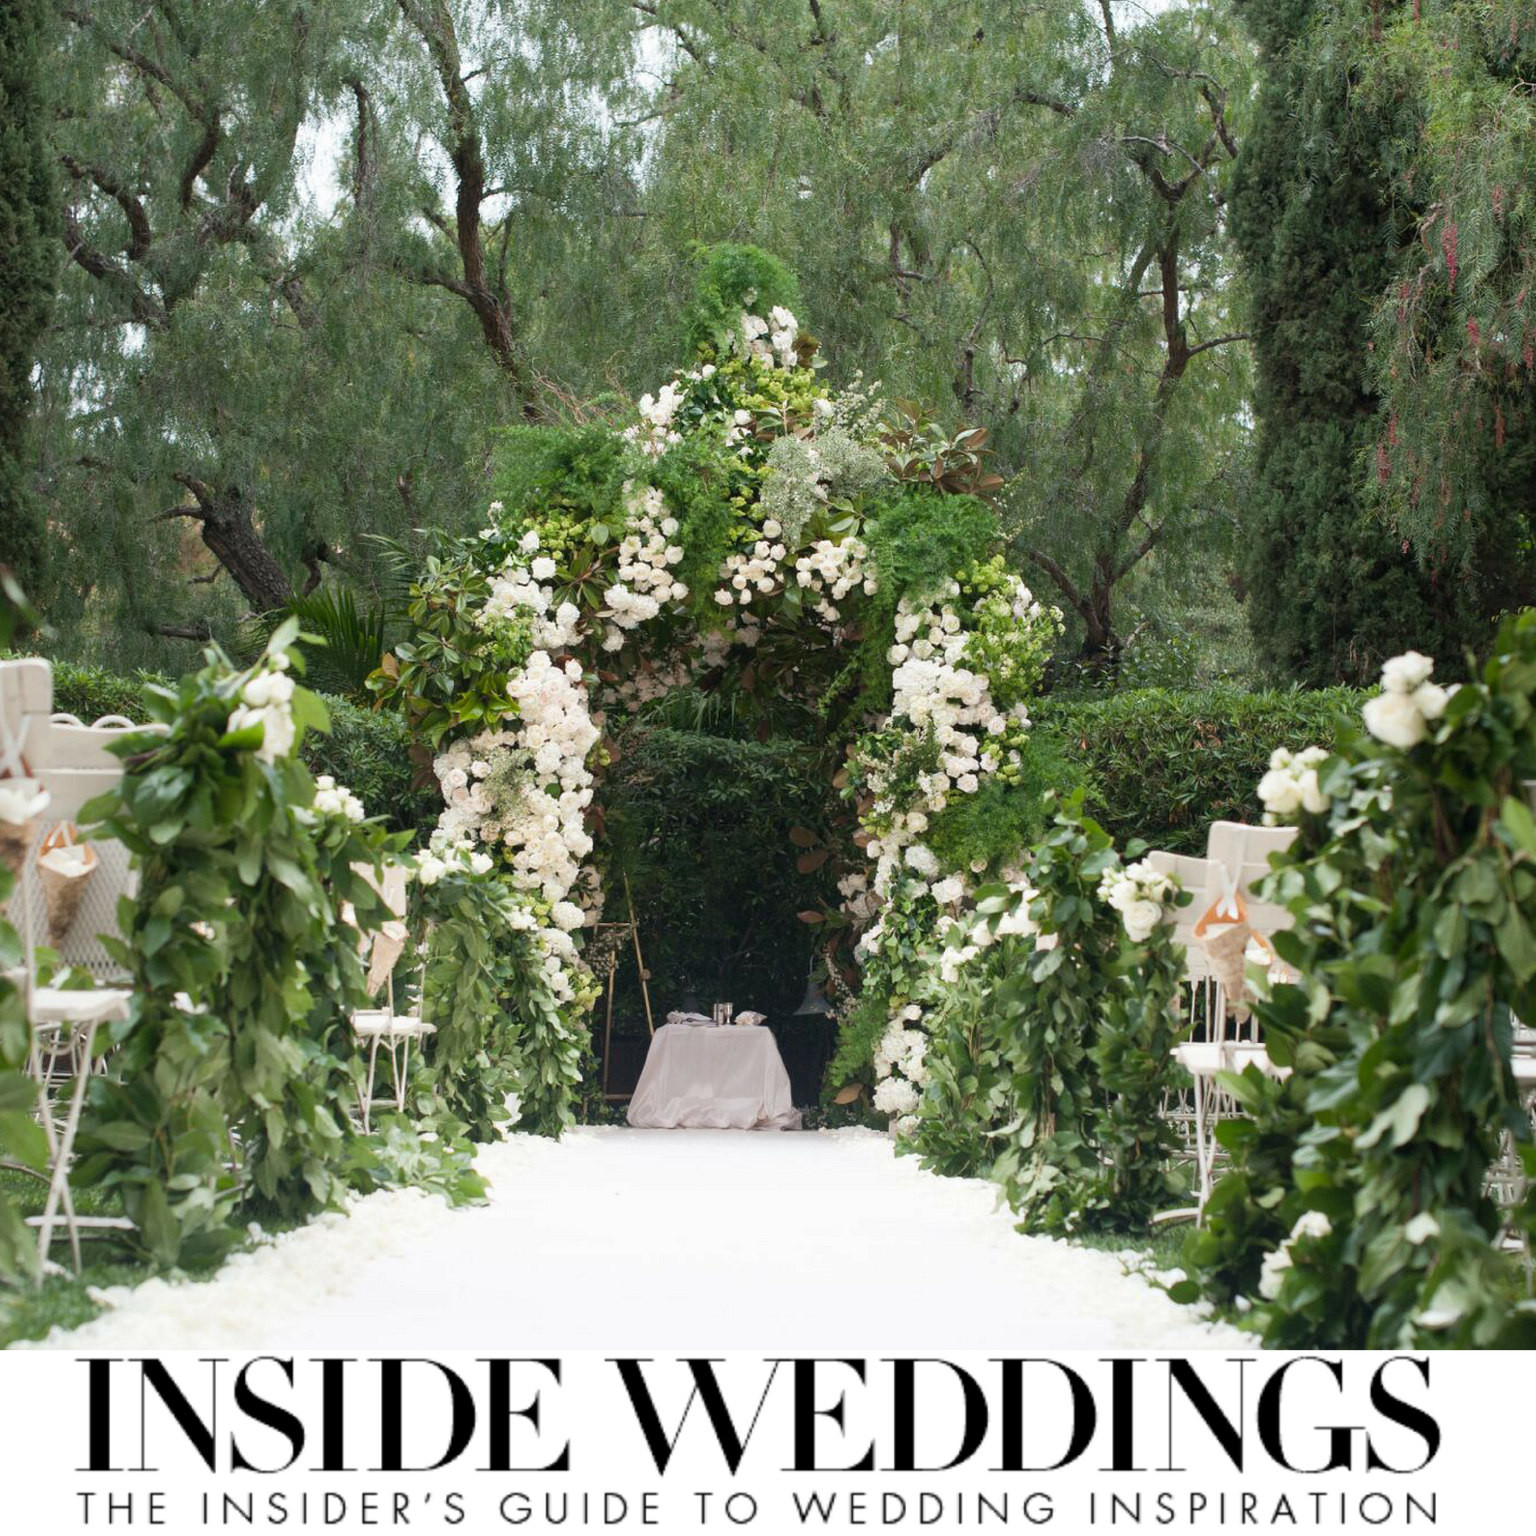 alyson fox, levine fox events, marks garden, images by lighting, casa de perrin, lehr and black, monique lhuillier, john solano, john solano photography, inside weddings, featured, featured on, press, beverly hills, beverly hills hotel, wedding planner, beverly hills wedding planner, celebrity planner,